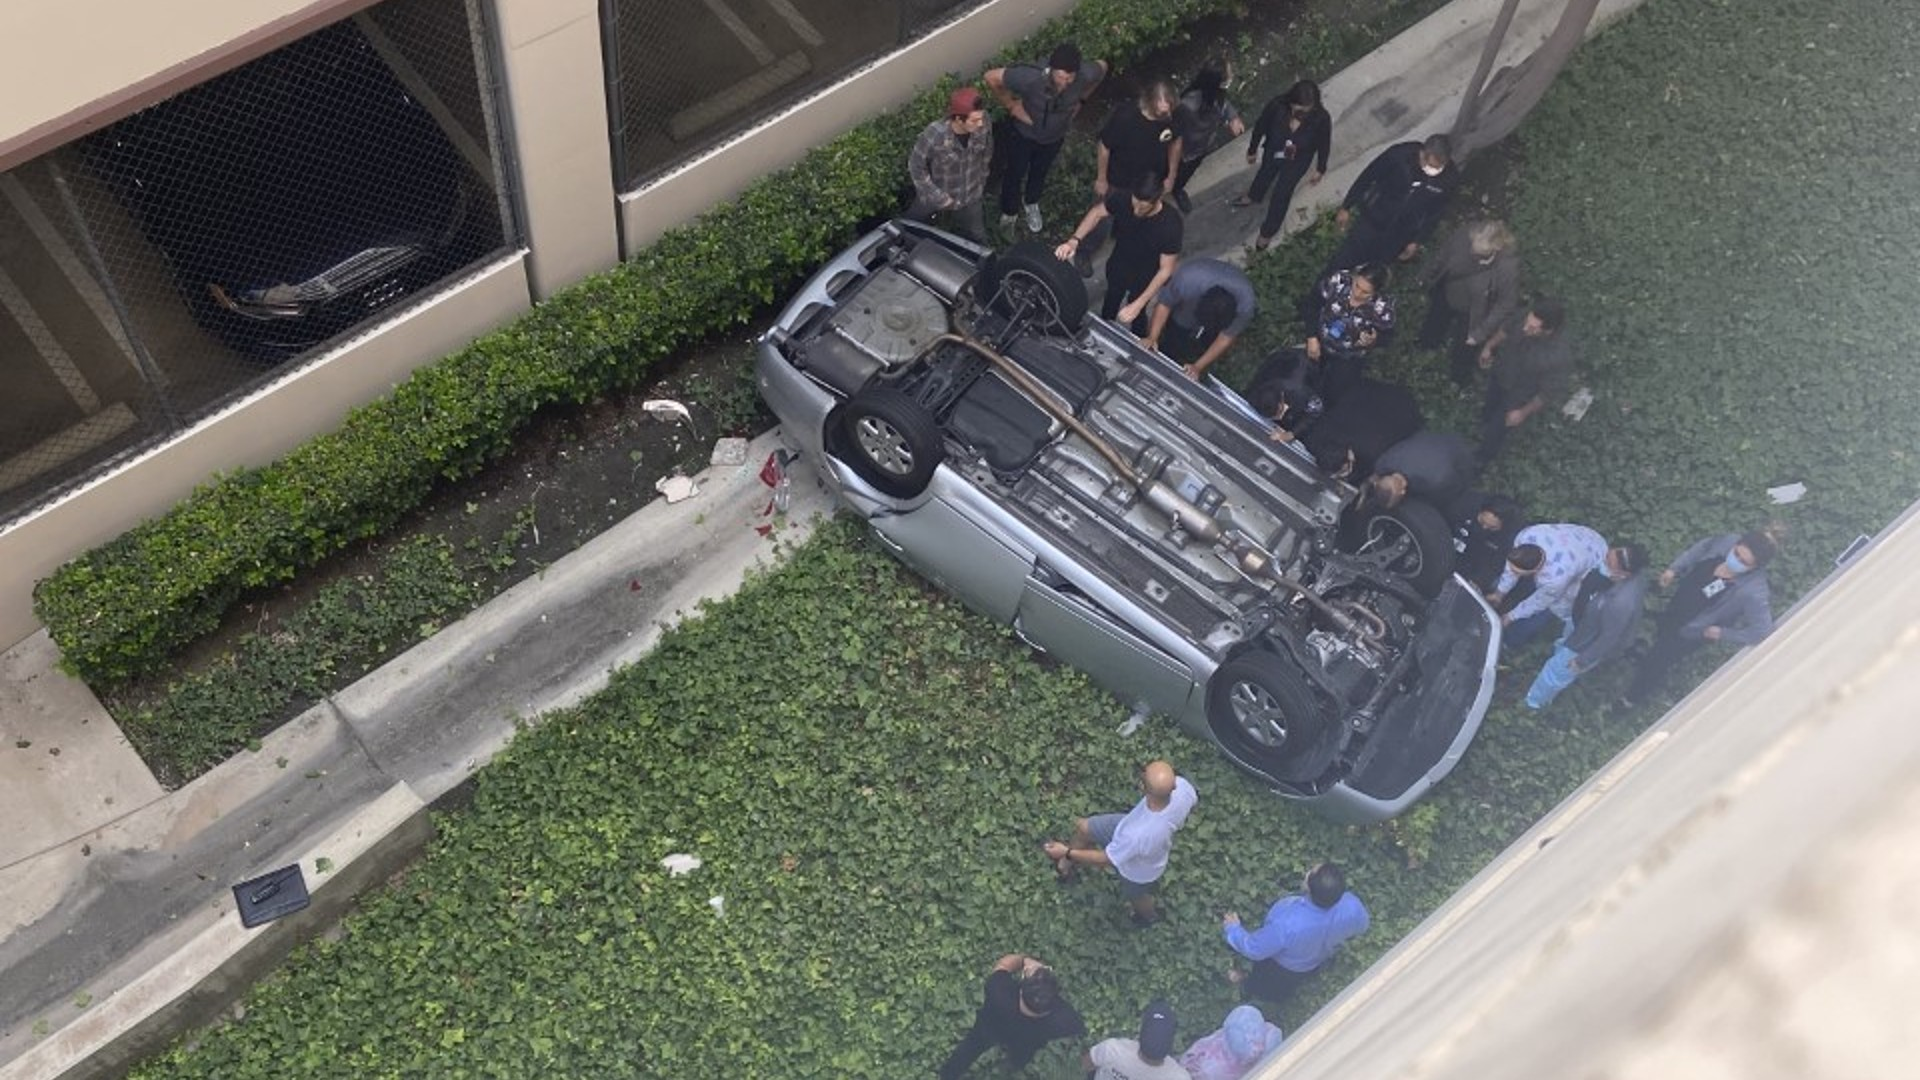 A photo submitted by a KTLA viewer showed more than a dozen people surrounding the car before the citizens were able to turn it back over.